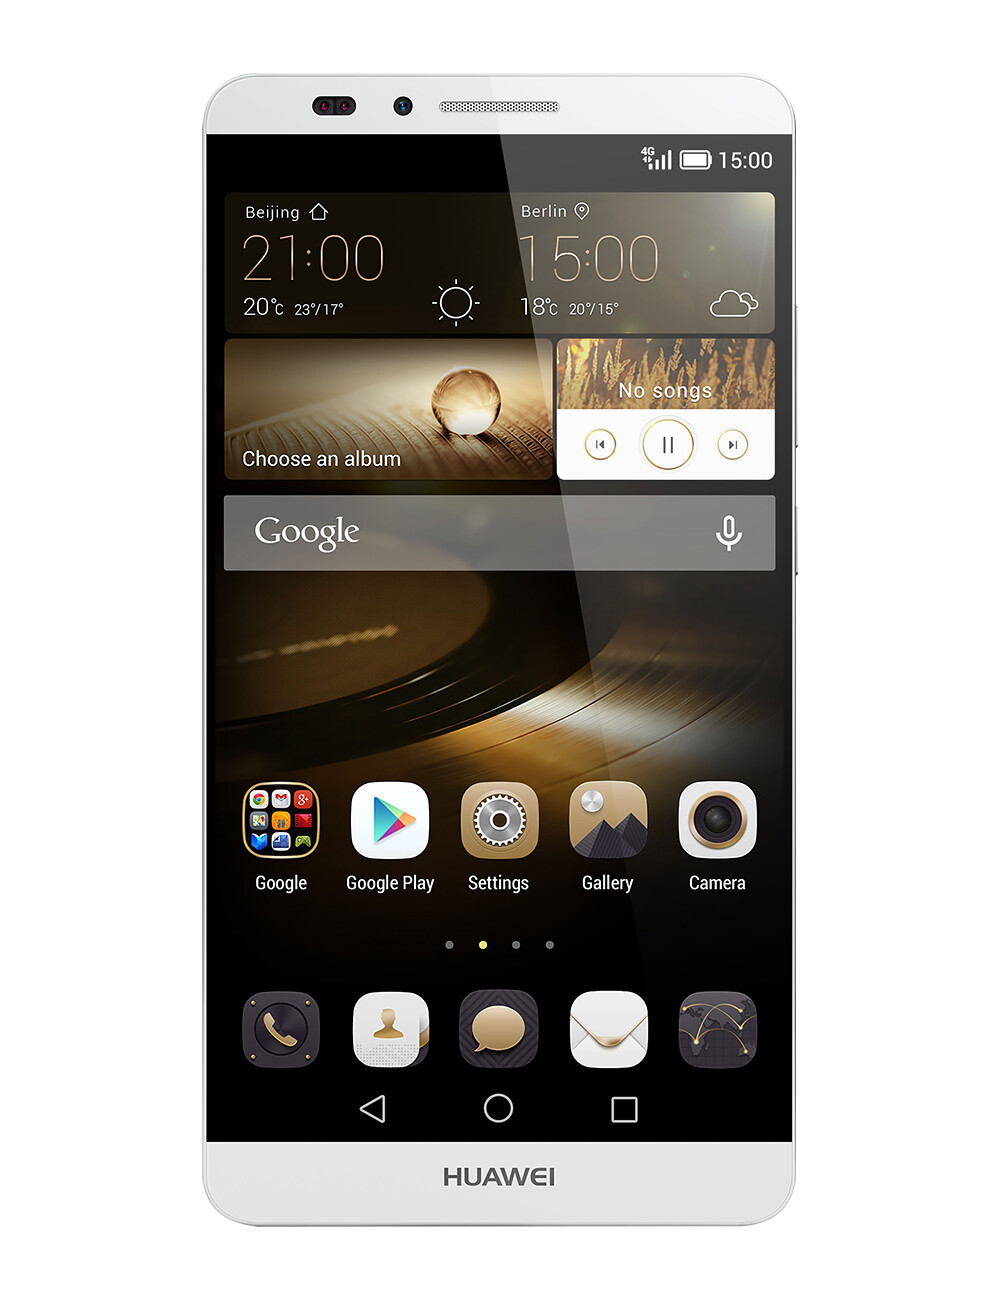 Best new octa-core Android smartphones (2015 edition) - PhoneArena